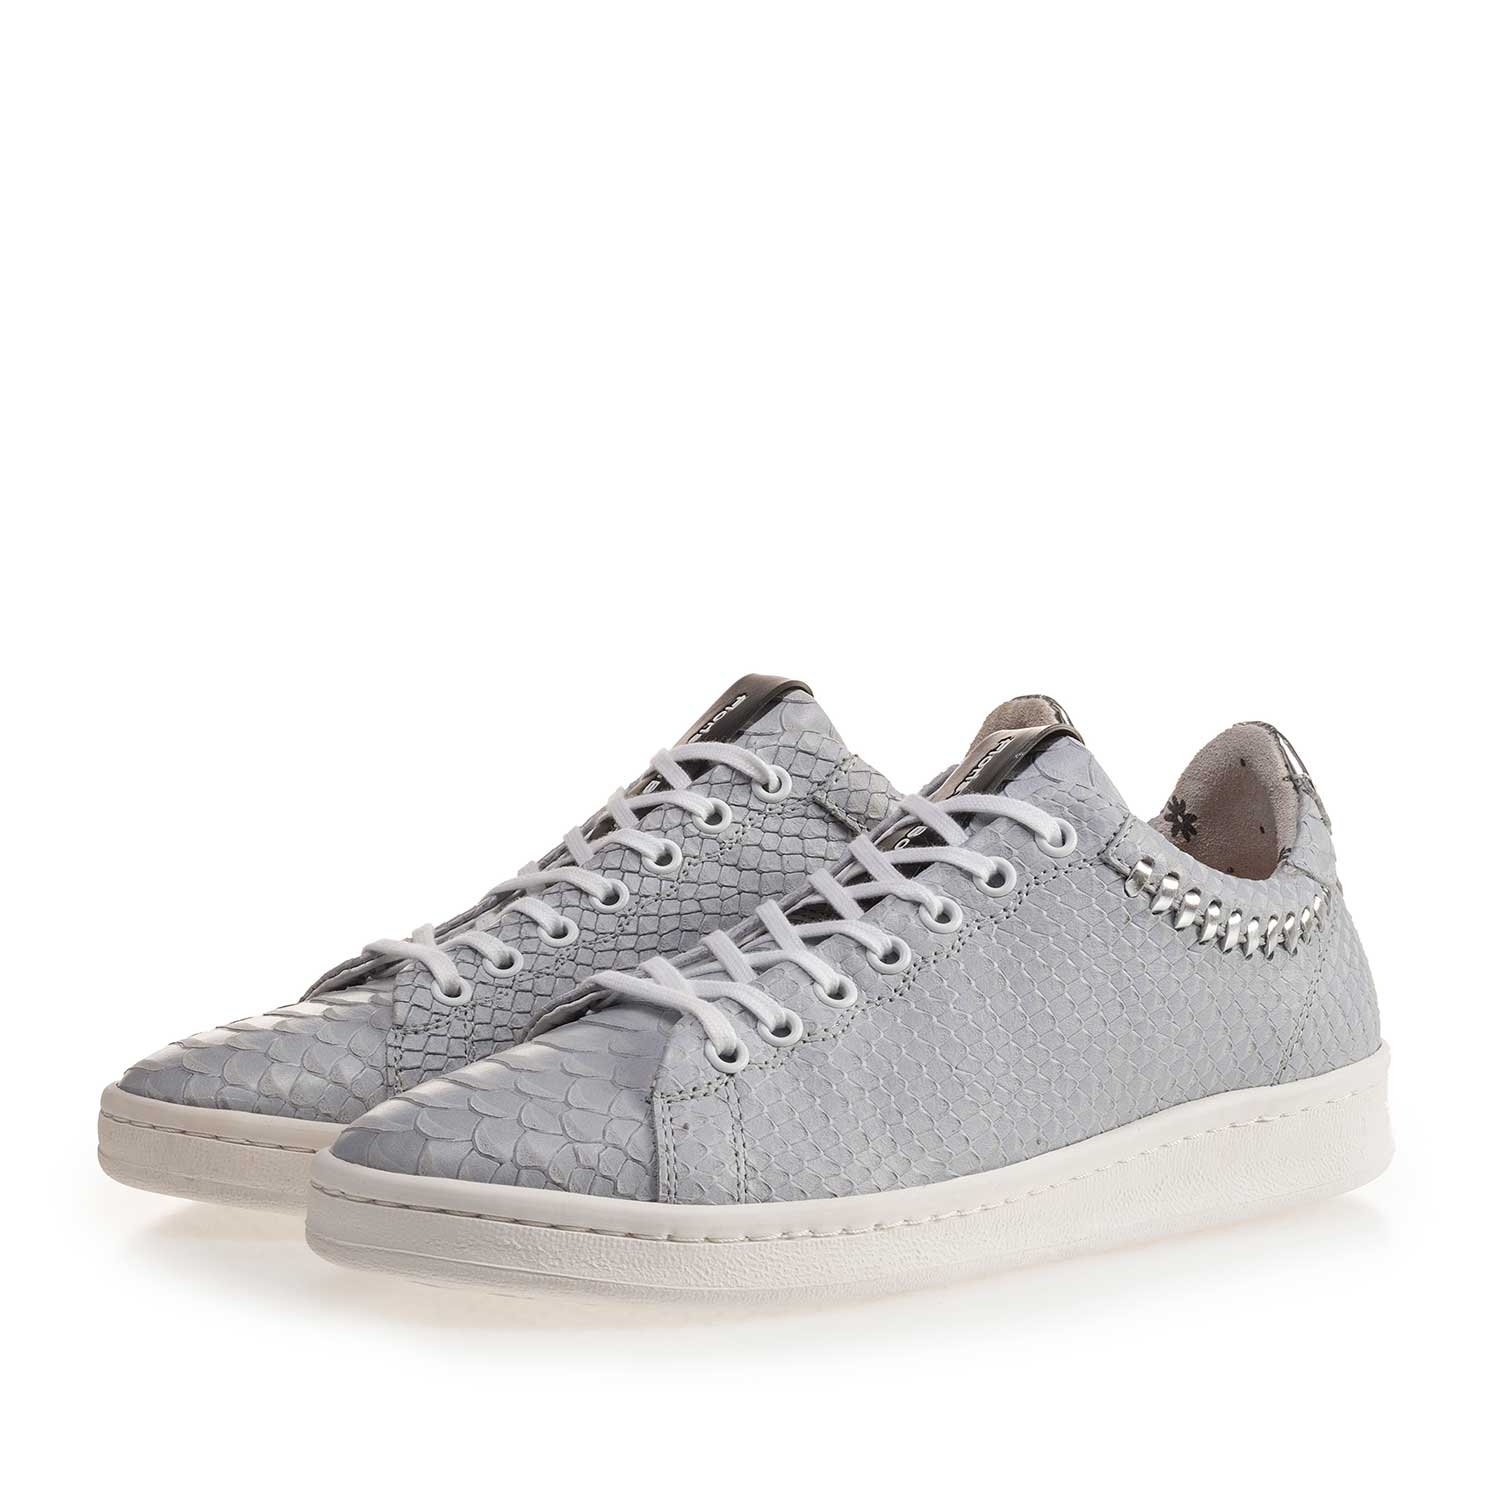 85251/01 - Light blue nubuck leather sneaker with snake print